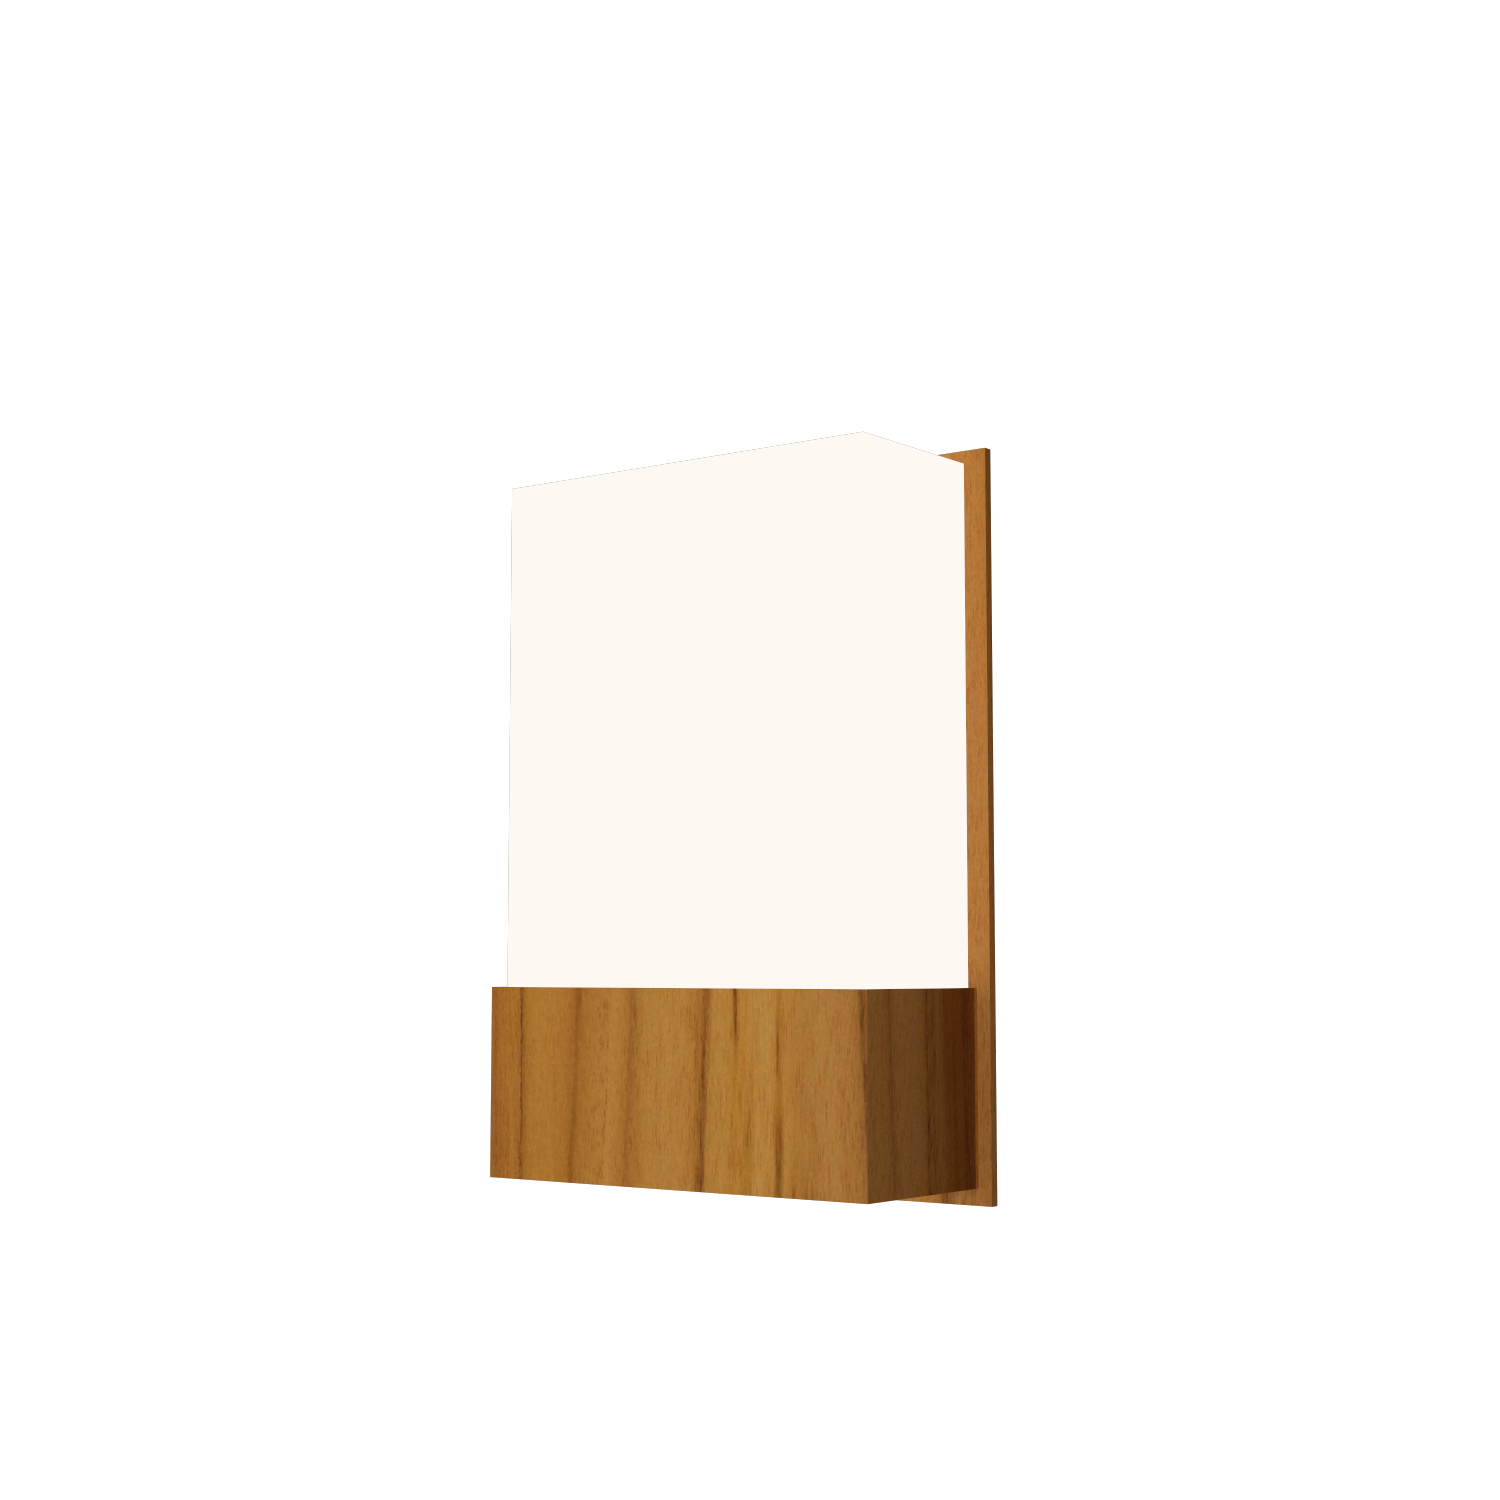 Wall Lamp Accord Clean 444 - Clean Line Accord Lighting | 12. Teak